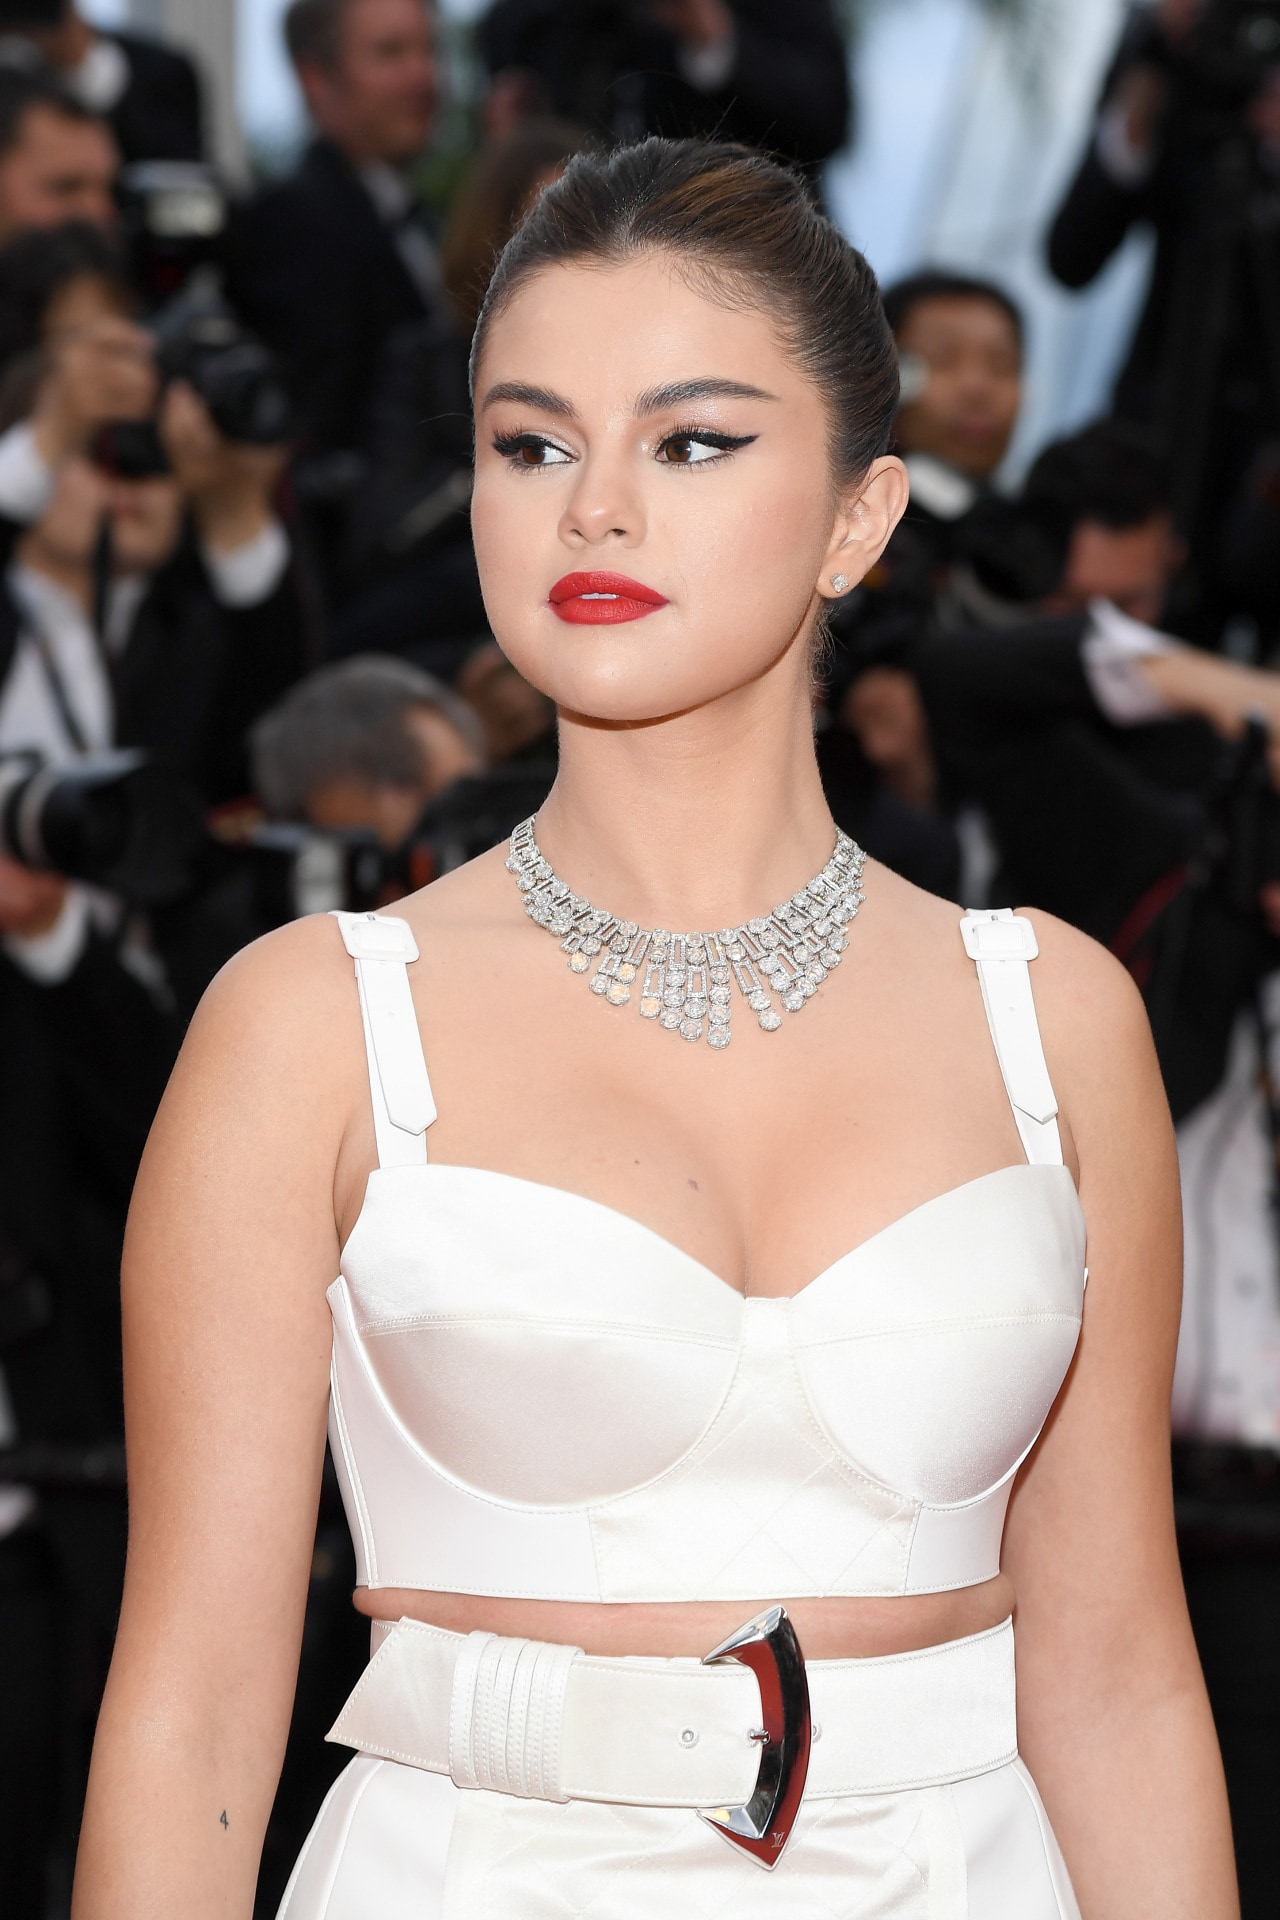 Selena Gomez returns to the red carpet at the 2019 Cannes Film Festival